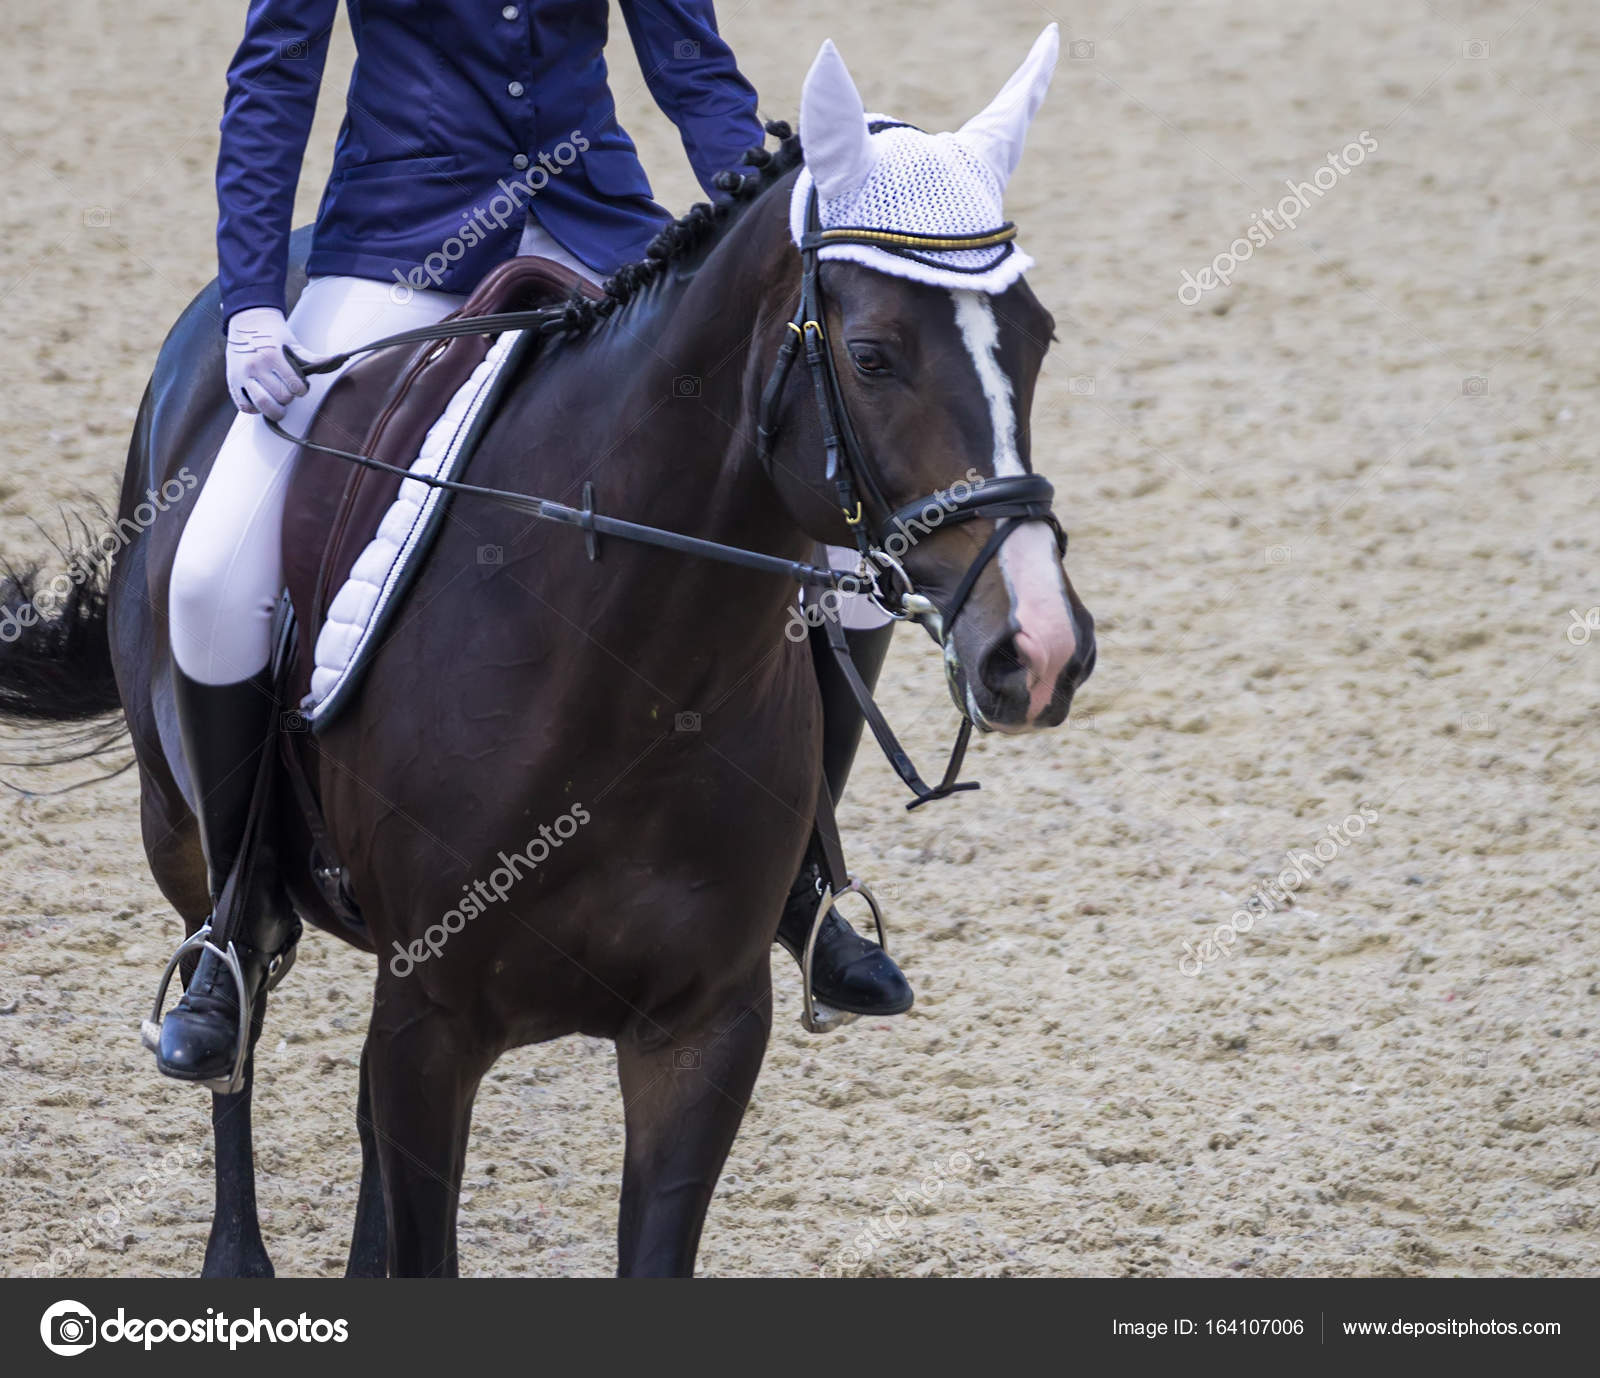 Black Horse Portrait During Dressage Competition Stock Photo C Martanovak 164107006